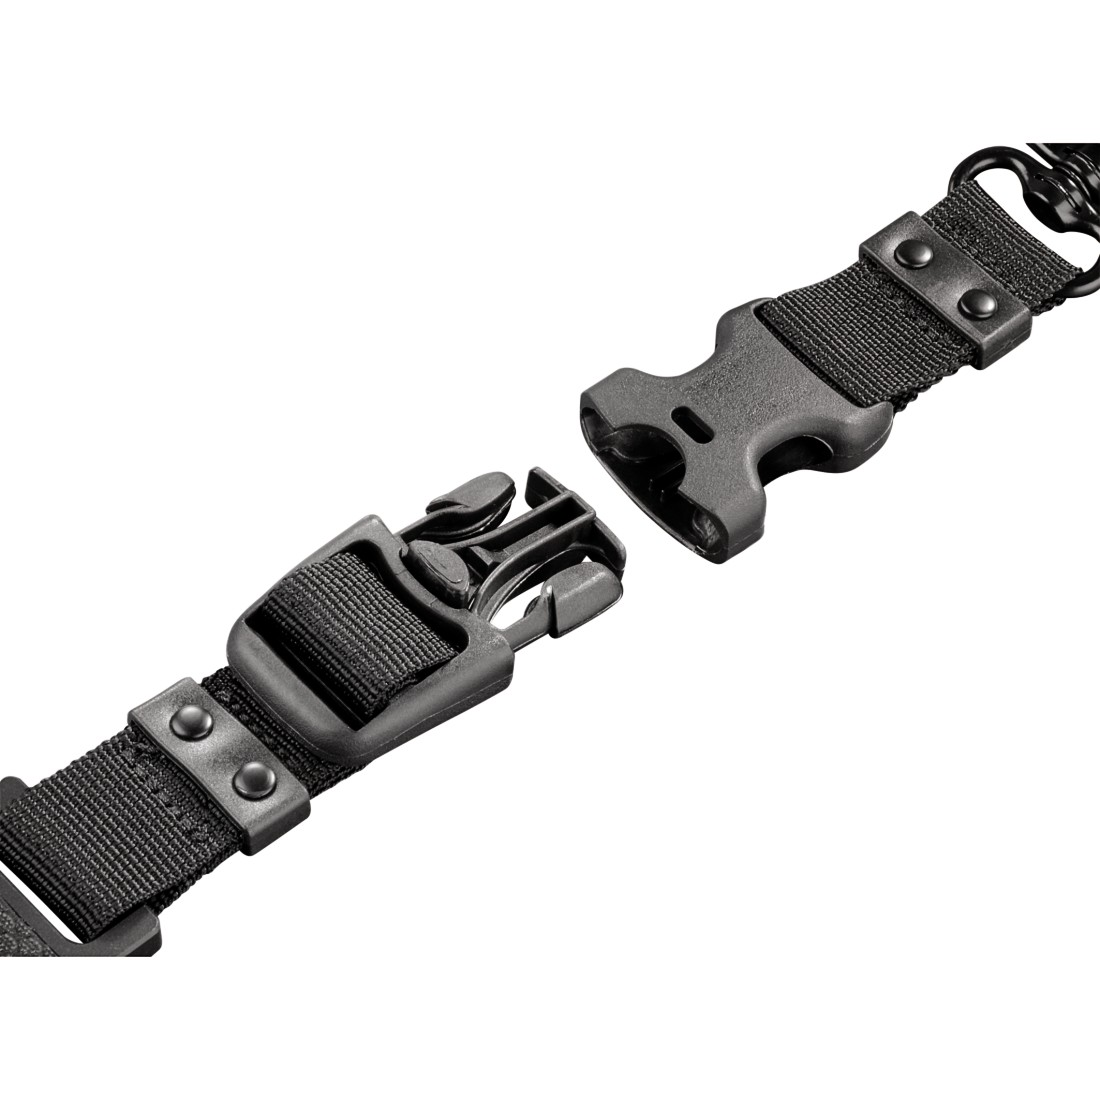 dex6 High-Res Detail 6 - Hama, Quick Shoot Strap Carrying Strap for SLR Cameras